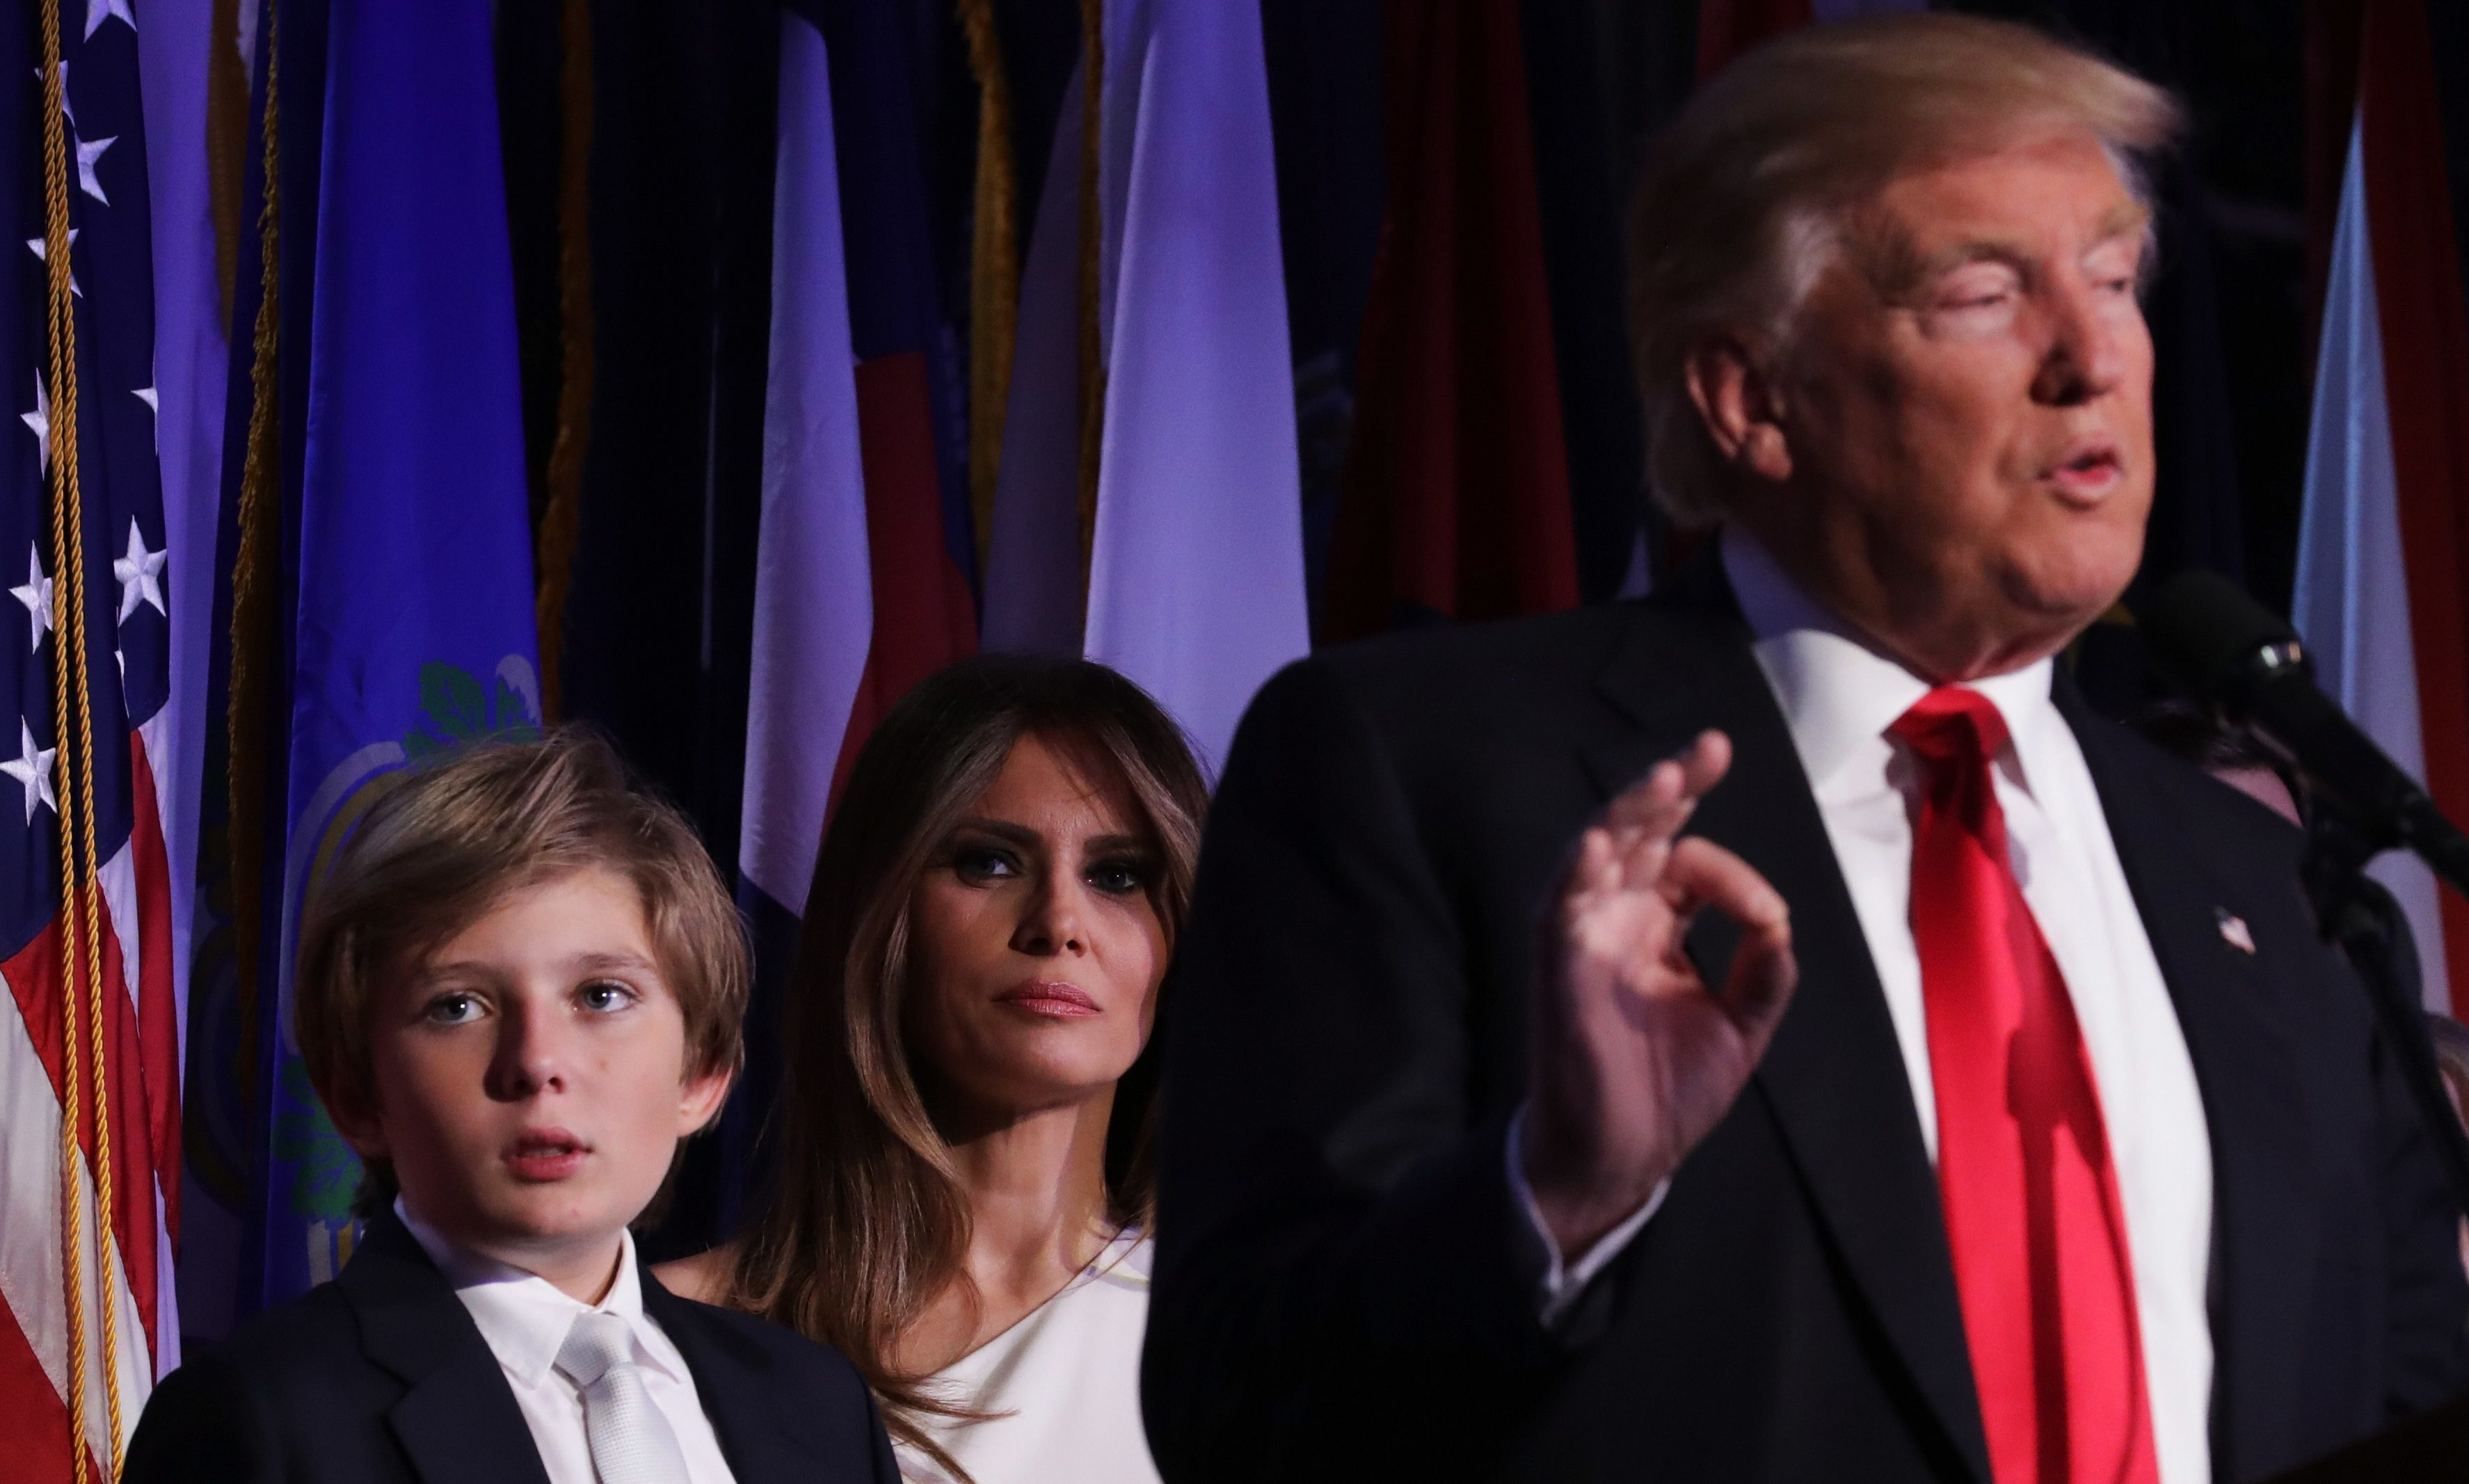 Republican president-elect Donald Trump delivers his acceptance speech as his son Barron Trump and wife Melania Trump looks on during his election night event at the New York Hilton Midtown